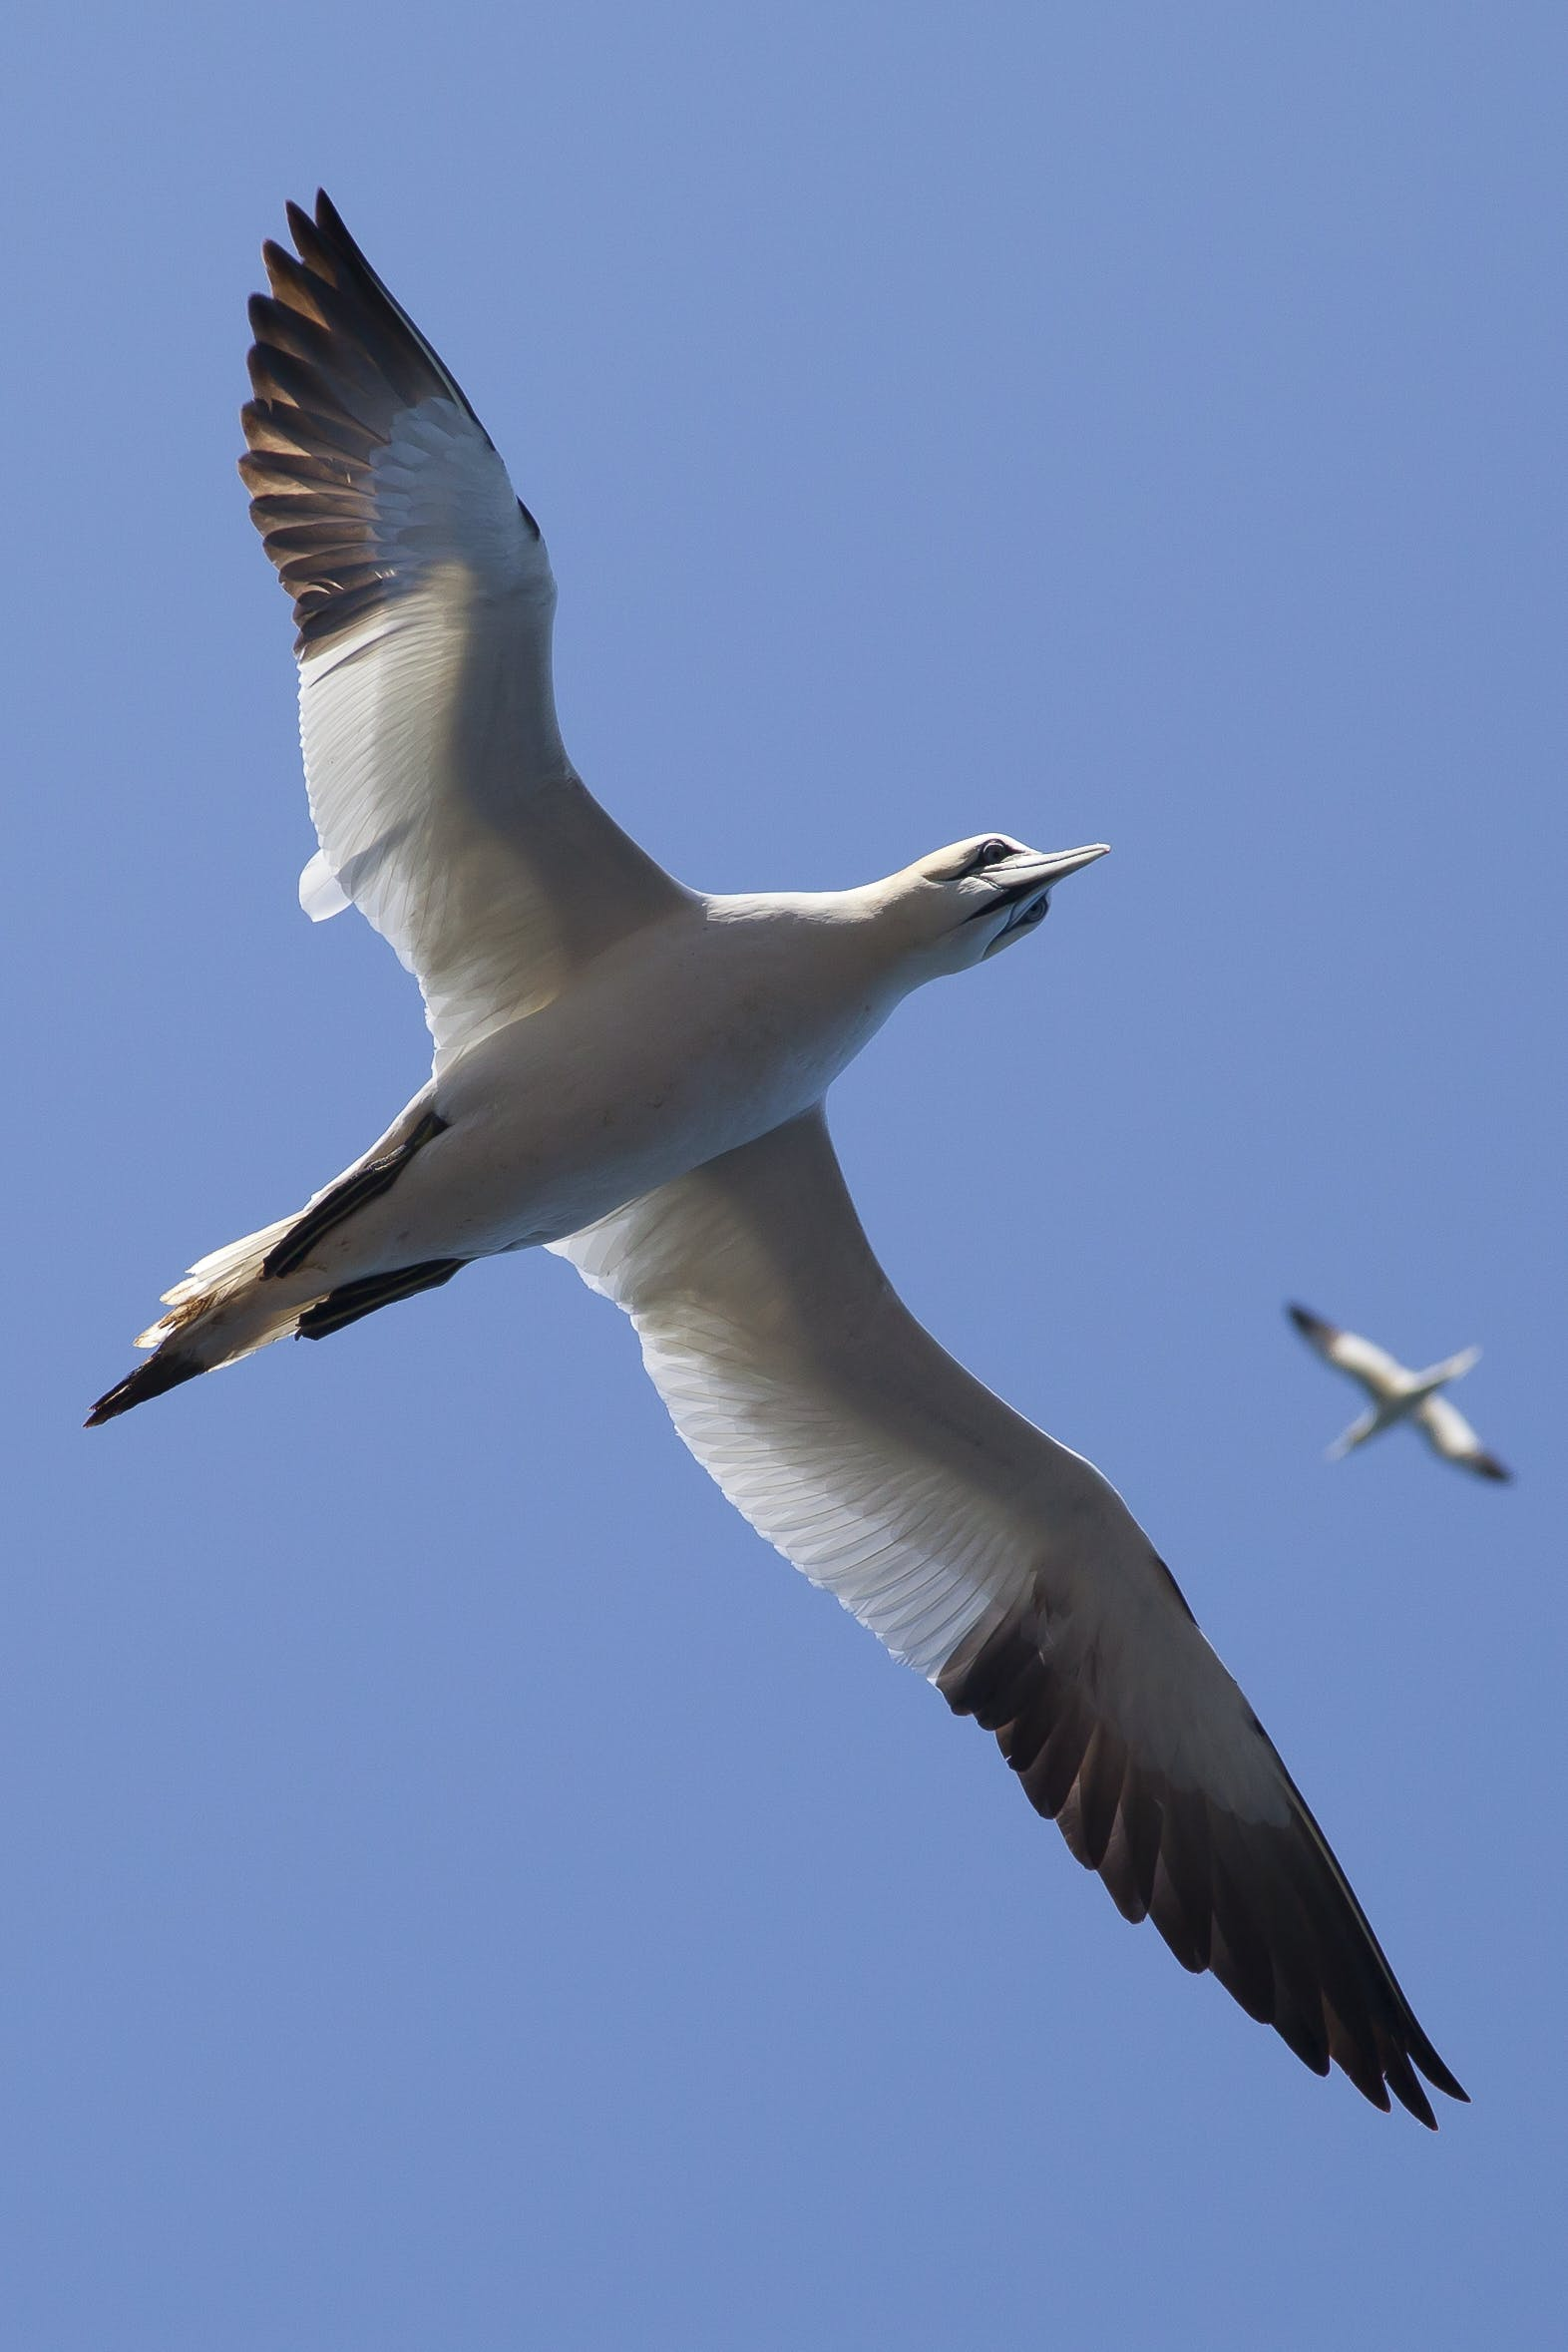 White and Black Bird Flying Under Blue Sky during Daytime